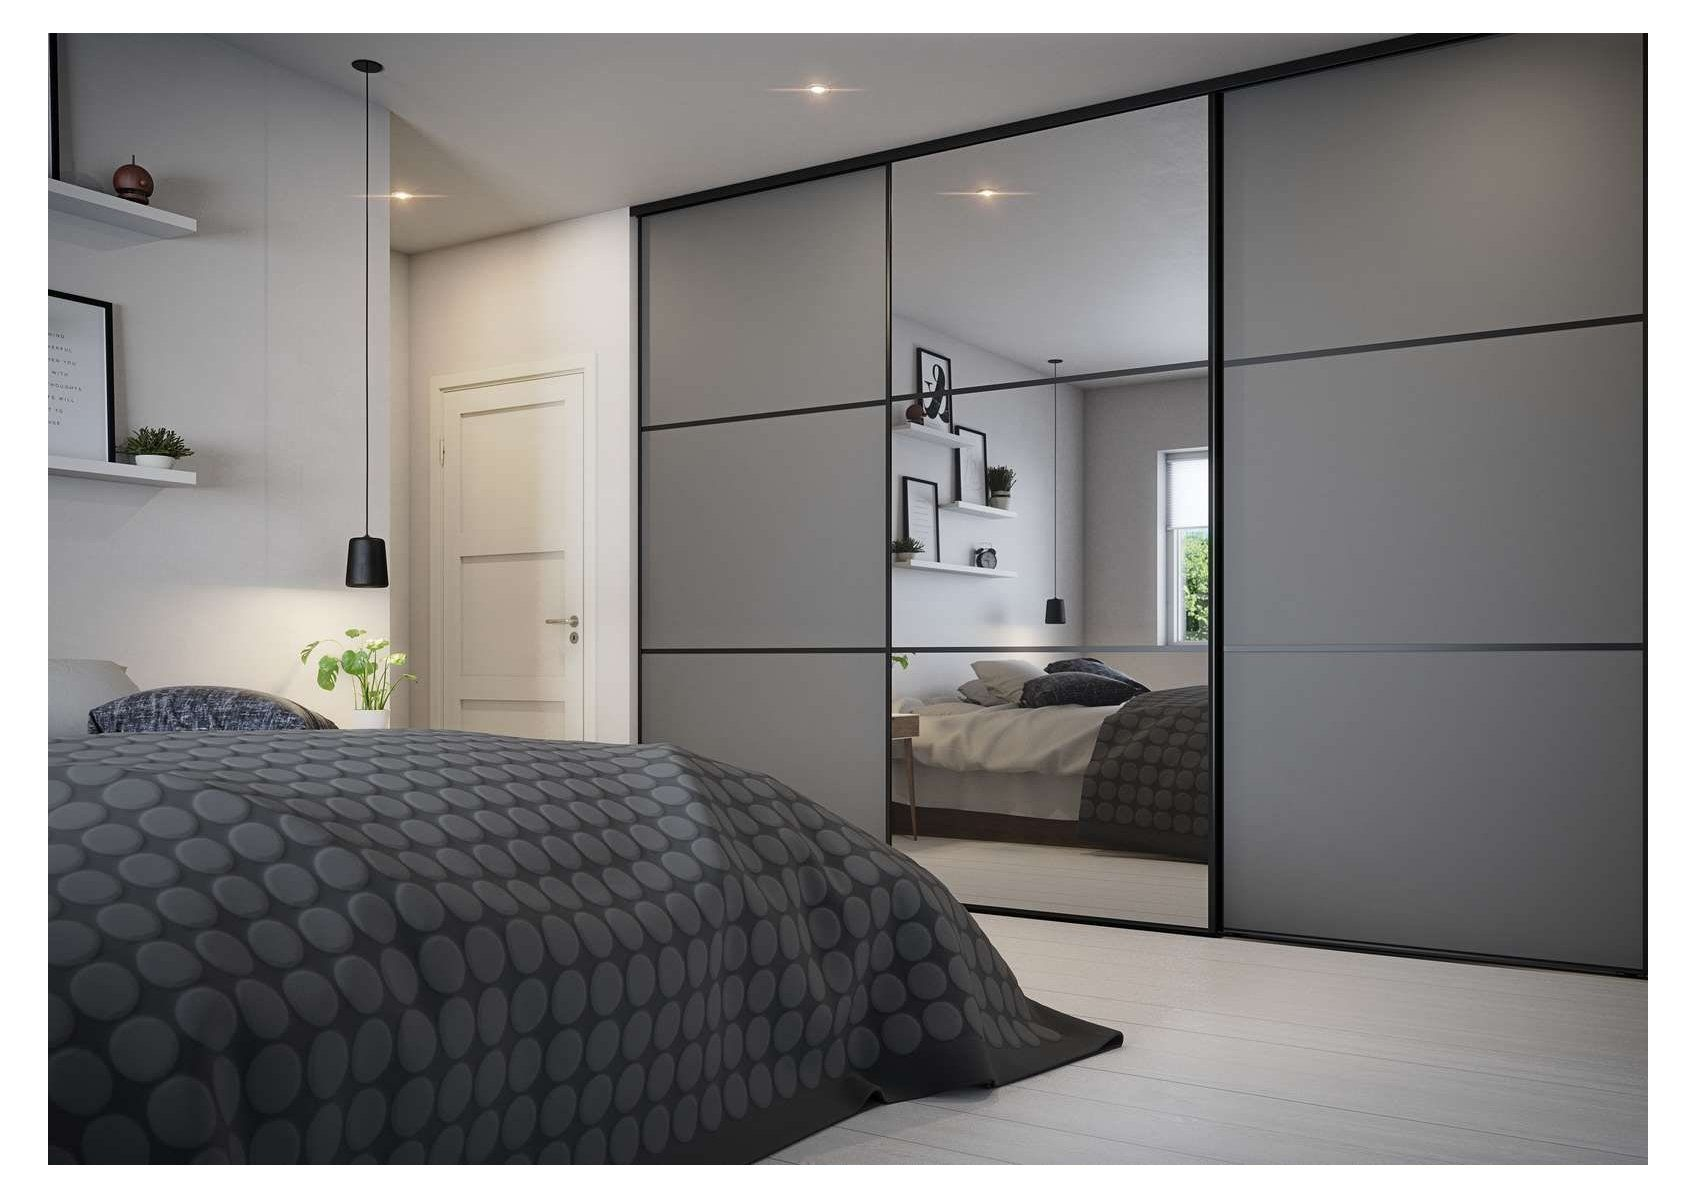 Luxury Crittall Style Wardrobe Grey Bedroom Wardrobe Greybedroomwardrobe Wardrobe Design Bedroom Sliding Door Wardrobe Designs Grey Bedroom Decor